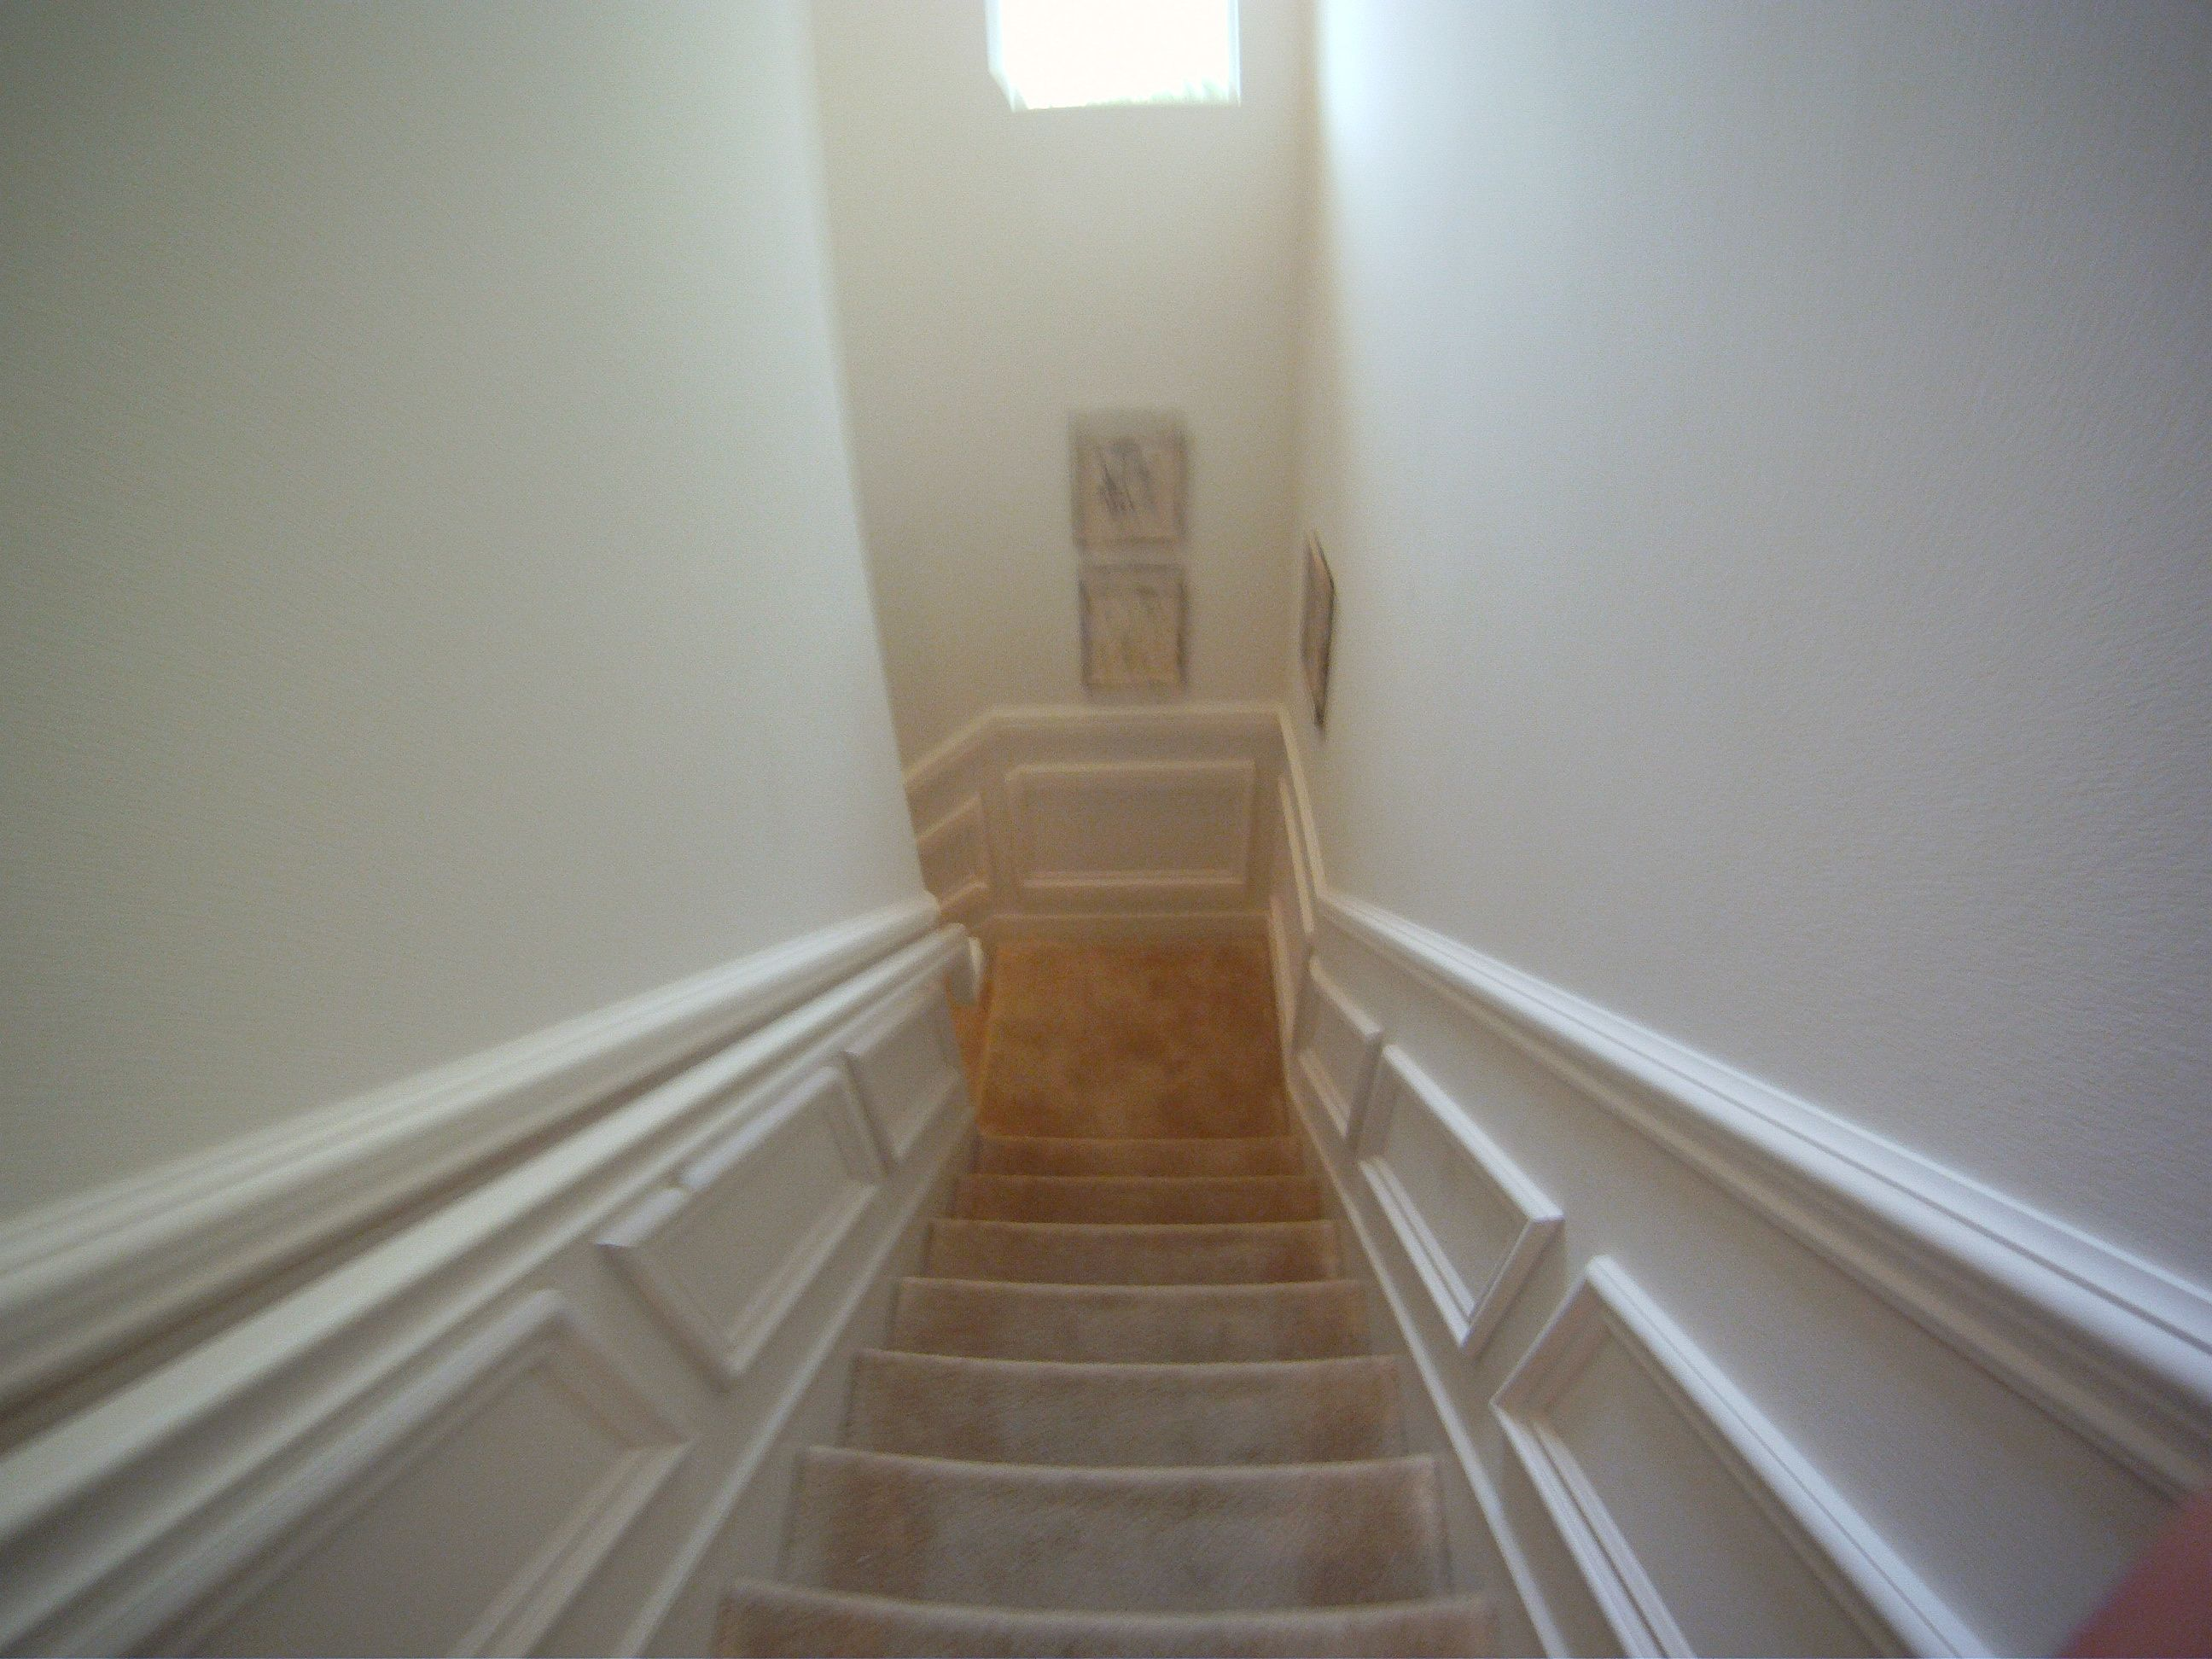 Wainscoting Crown Molding Baseboards Chair Rails Ceiling Beams Wainscoting Chair Rail Ceiling Beams